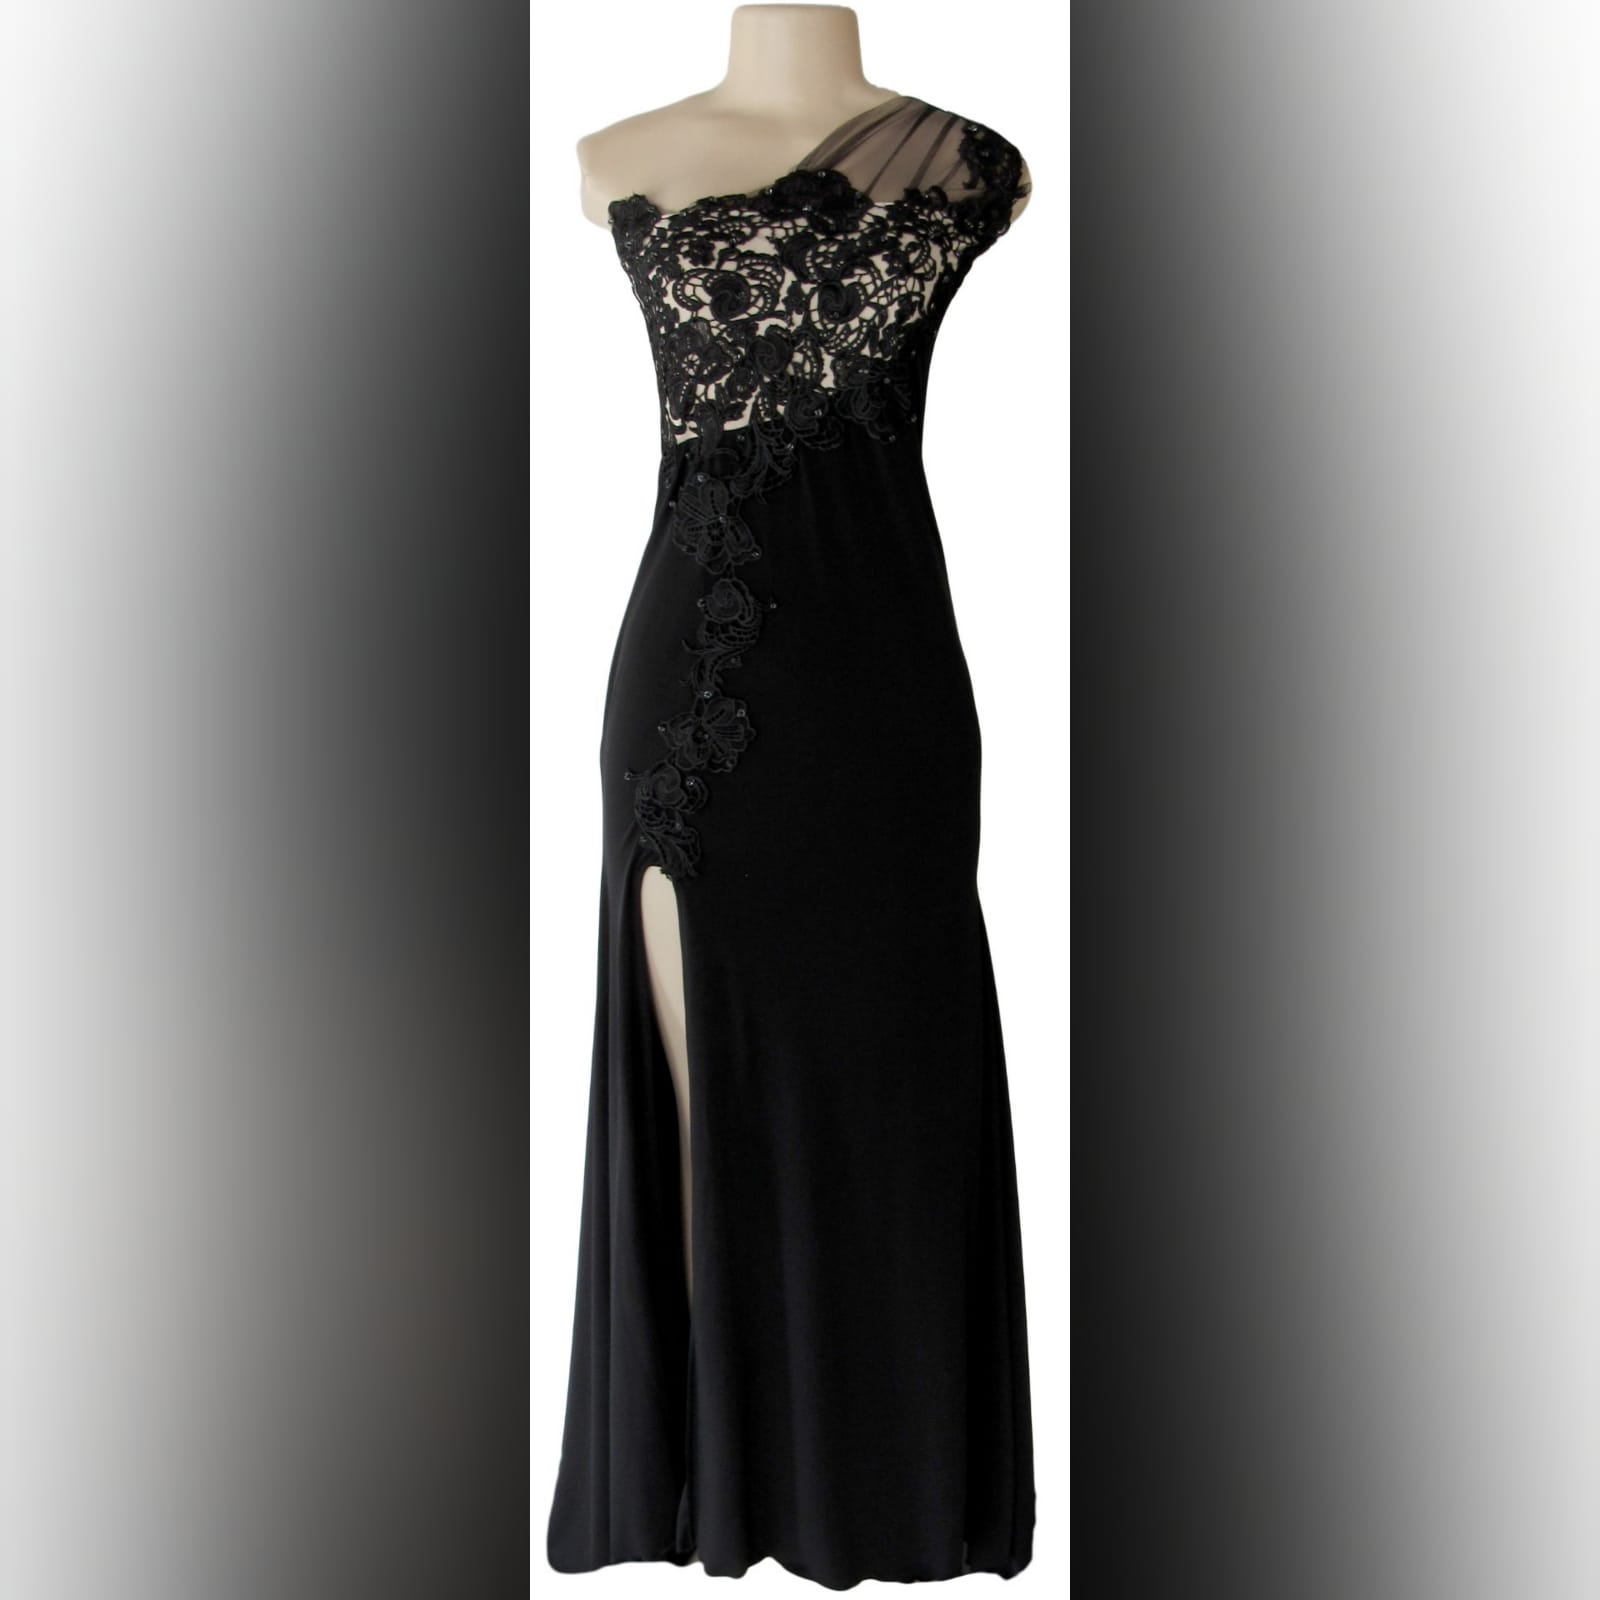 Long black evening dress with lace 1 single shoulder, lace bodice long black evening dress. With a slit and a train